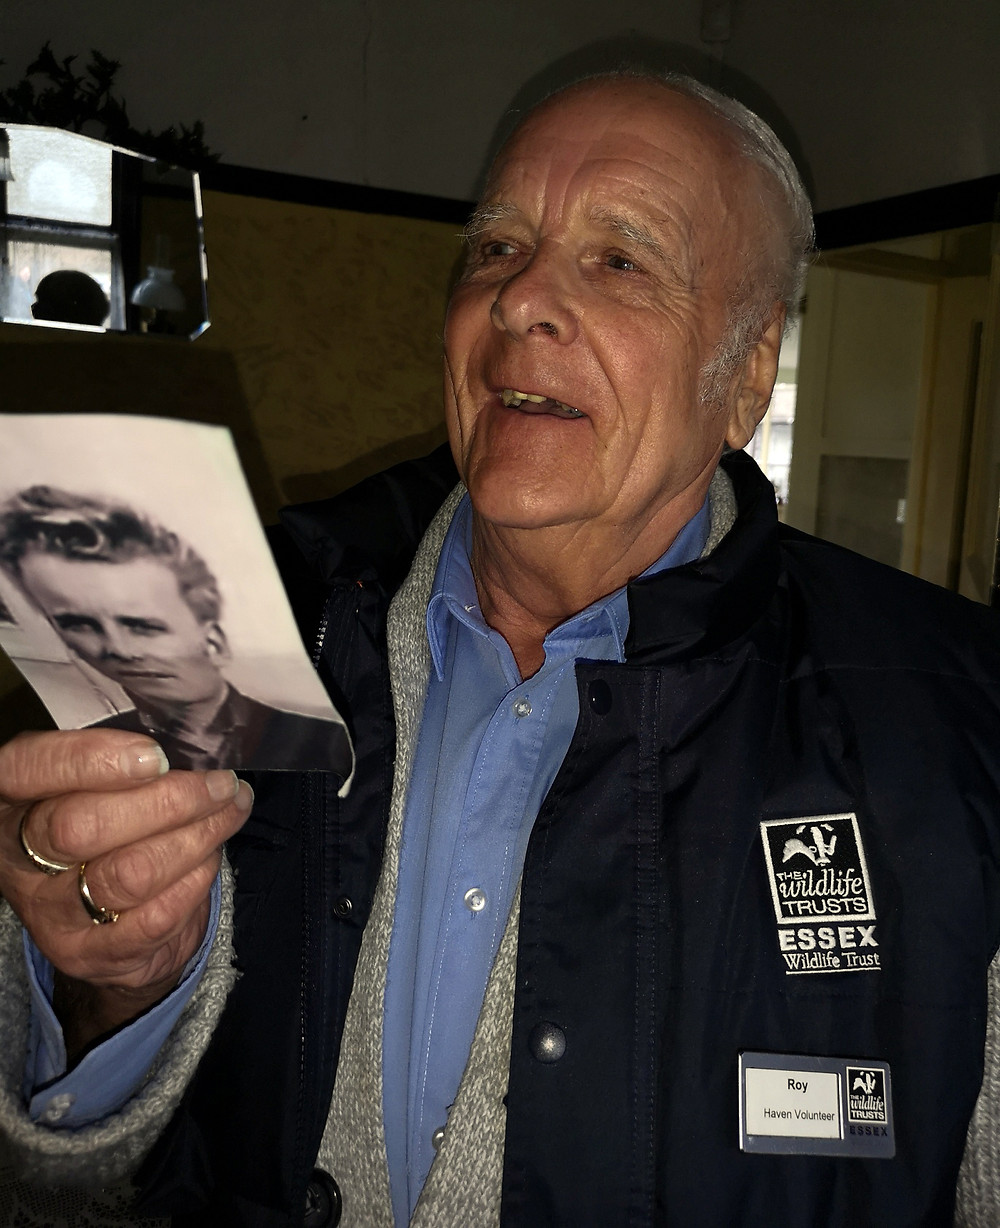 Roy with a picture of his younger self